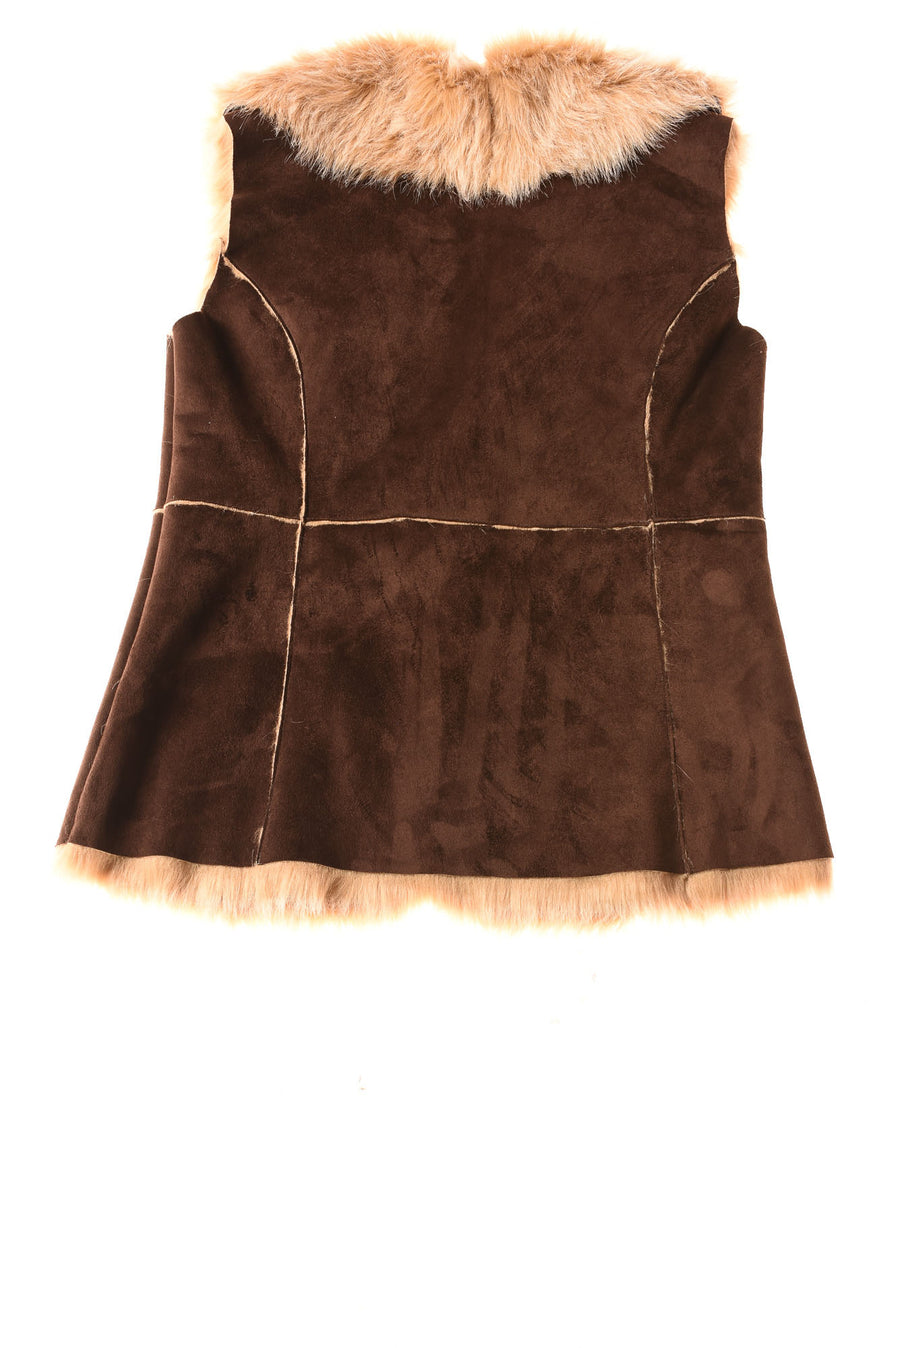 NEW Hopeless Romantic Women's Coat Large/X-Large Brown